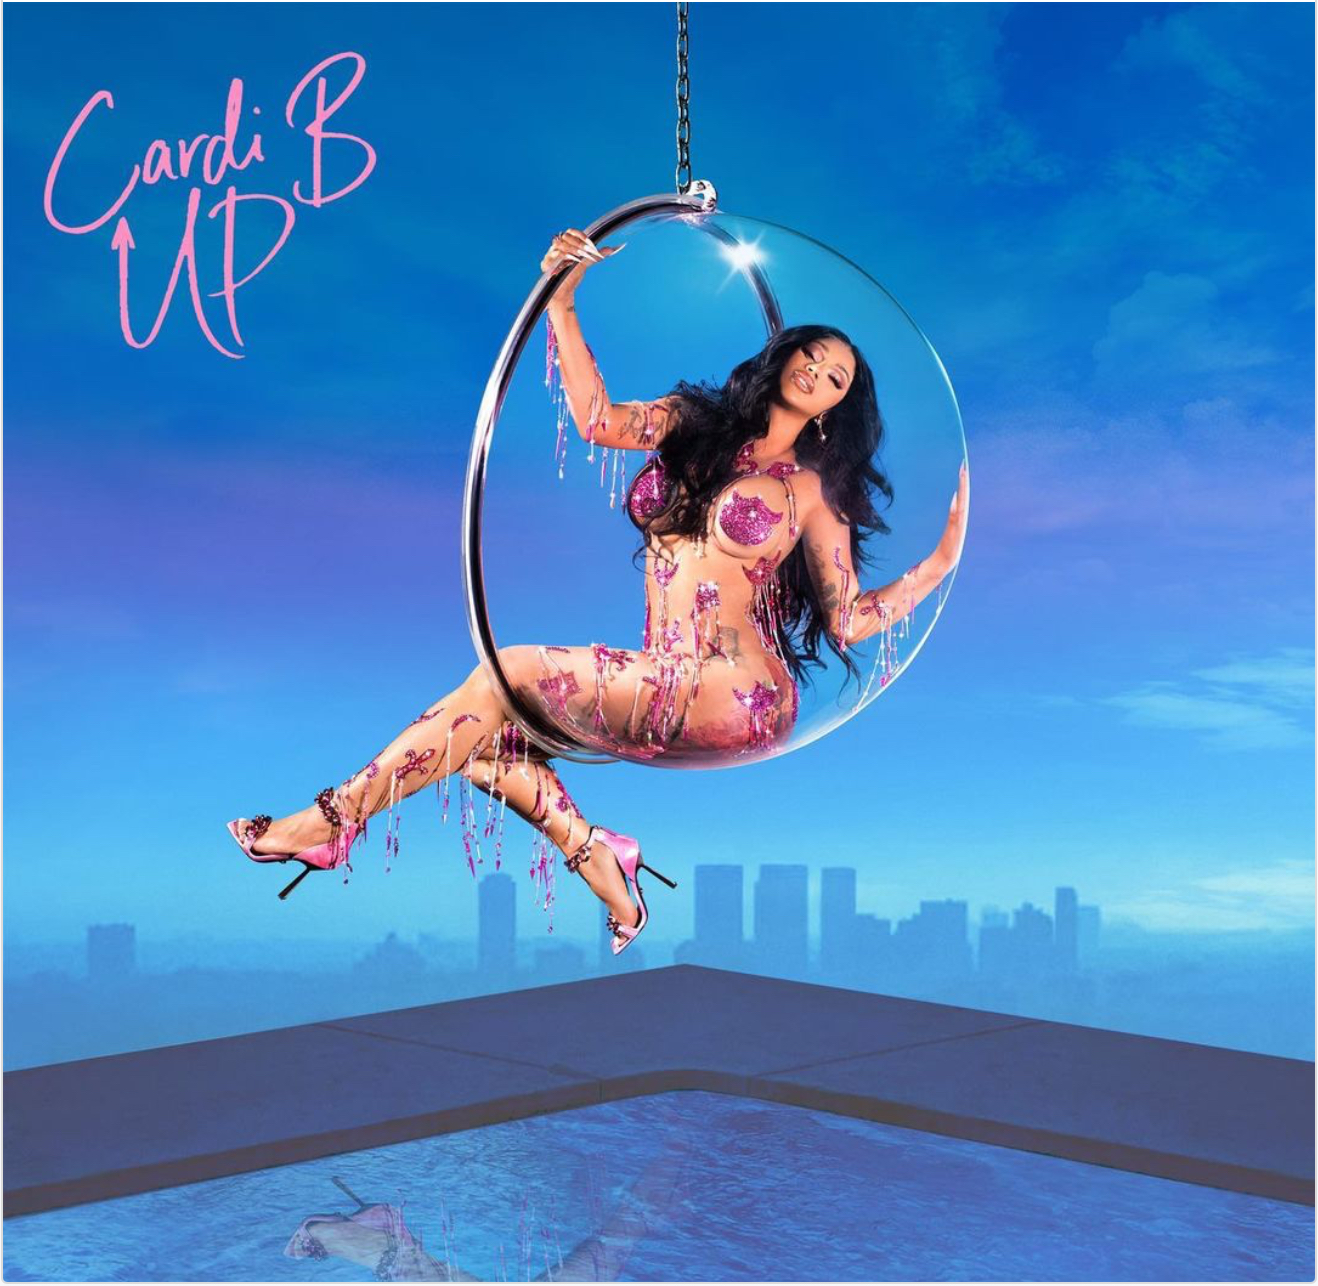 Art for Up by Cardi B